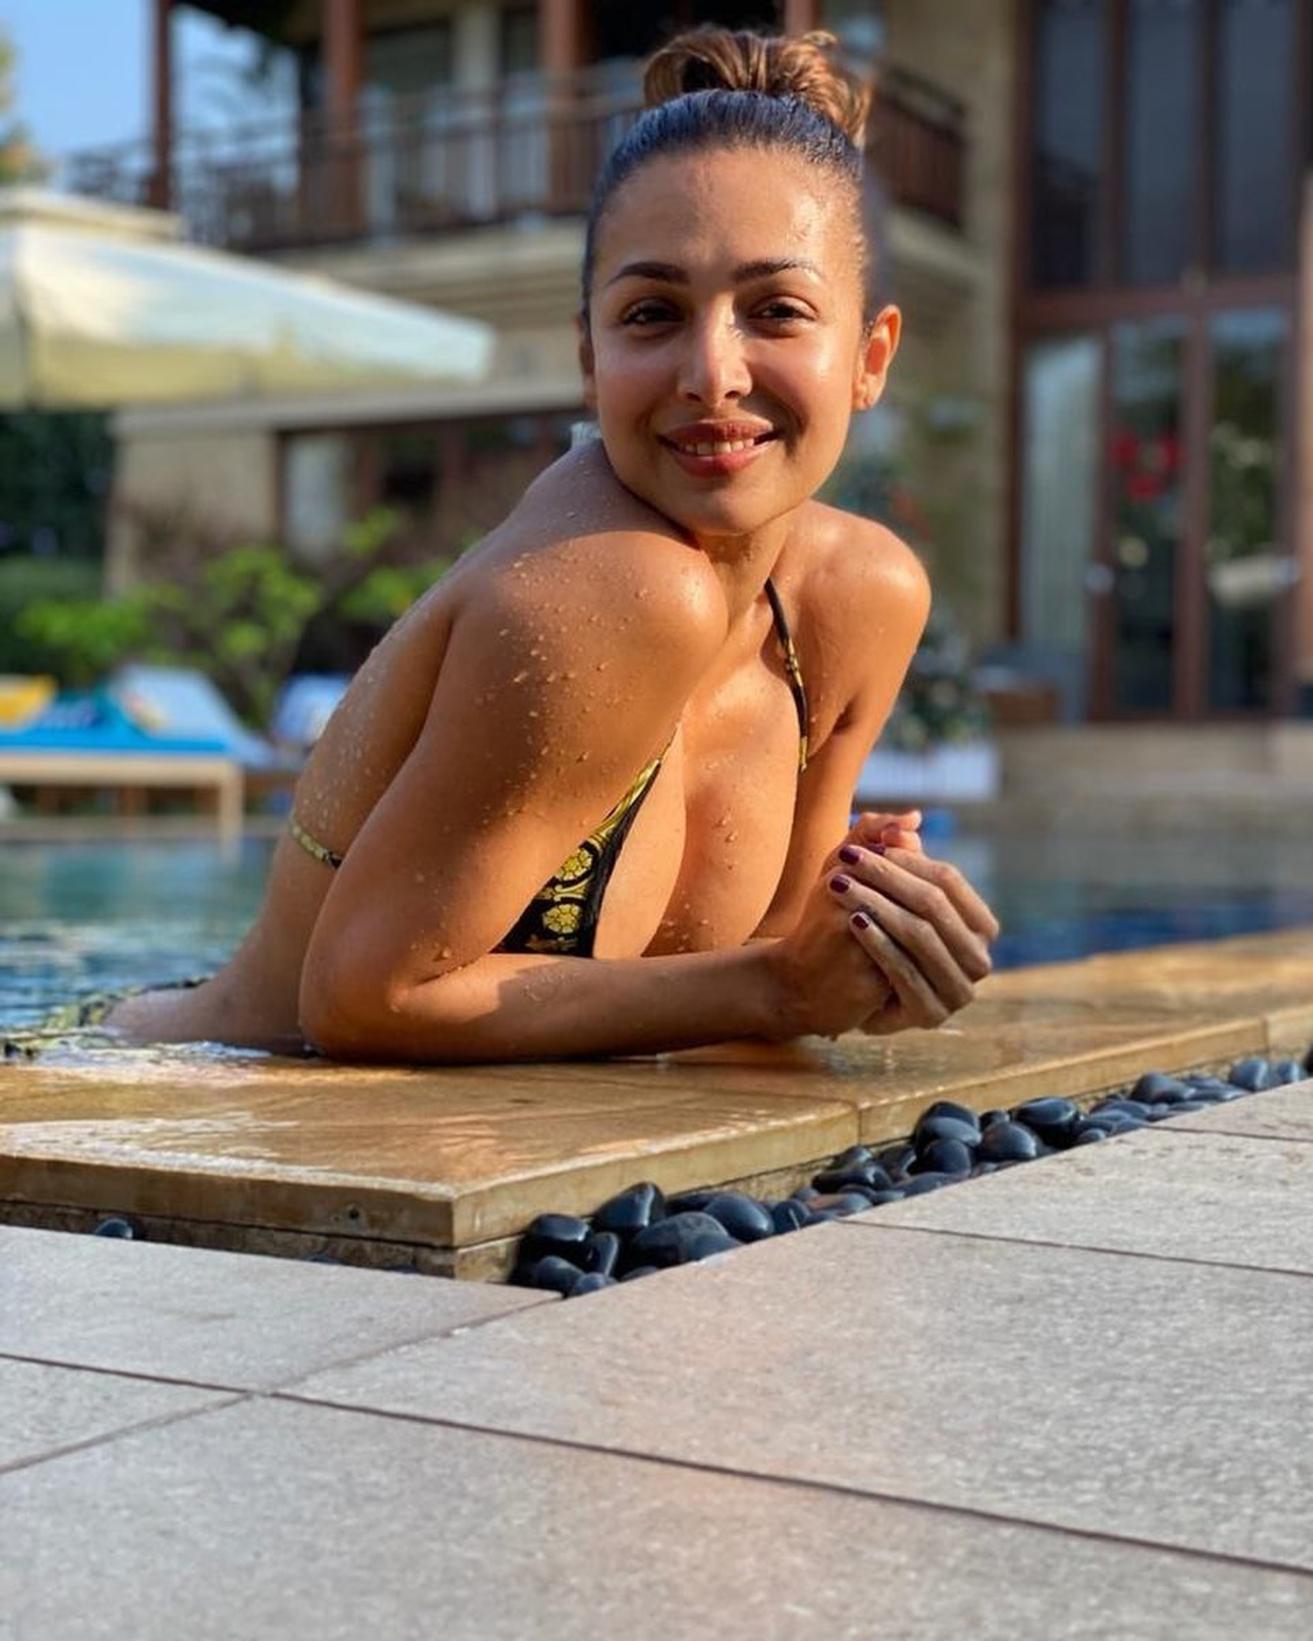 Malaika Arora flaunts her cleavage as she smiles for the camera while chilling in the pool. (Credit: Instagram)